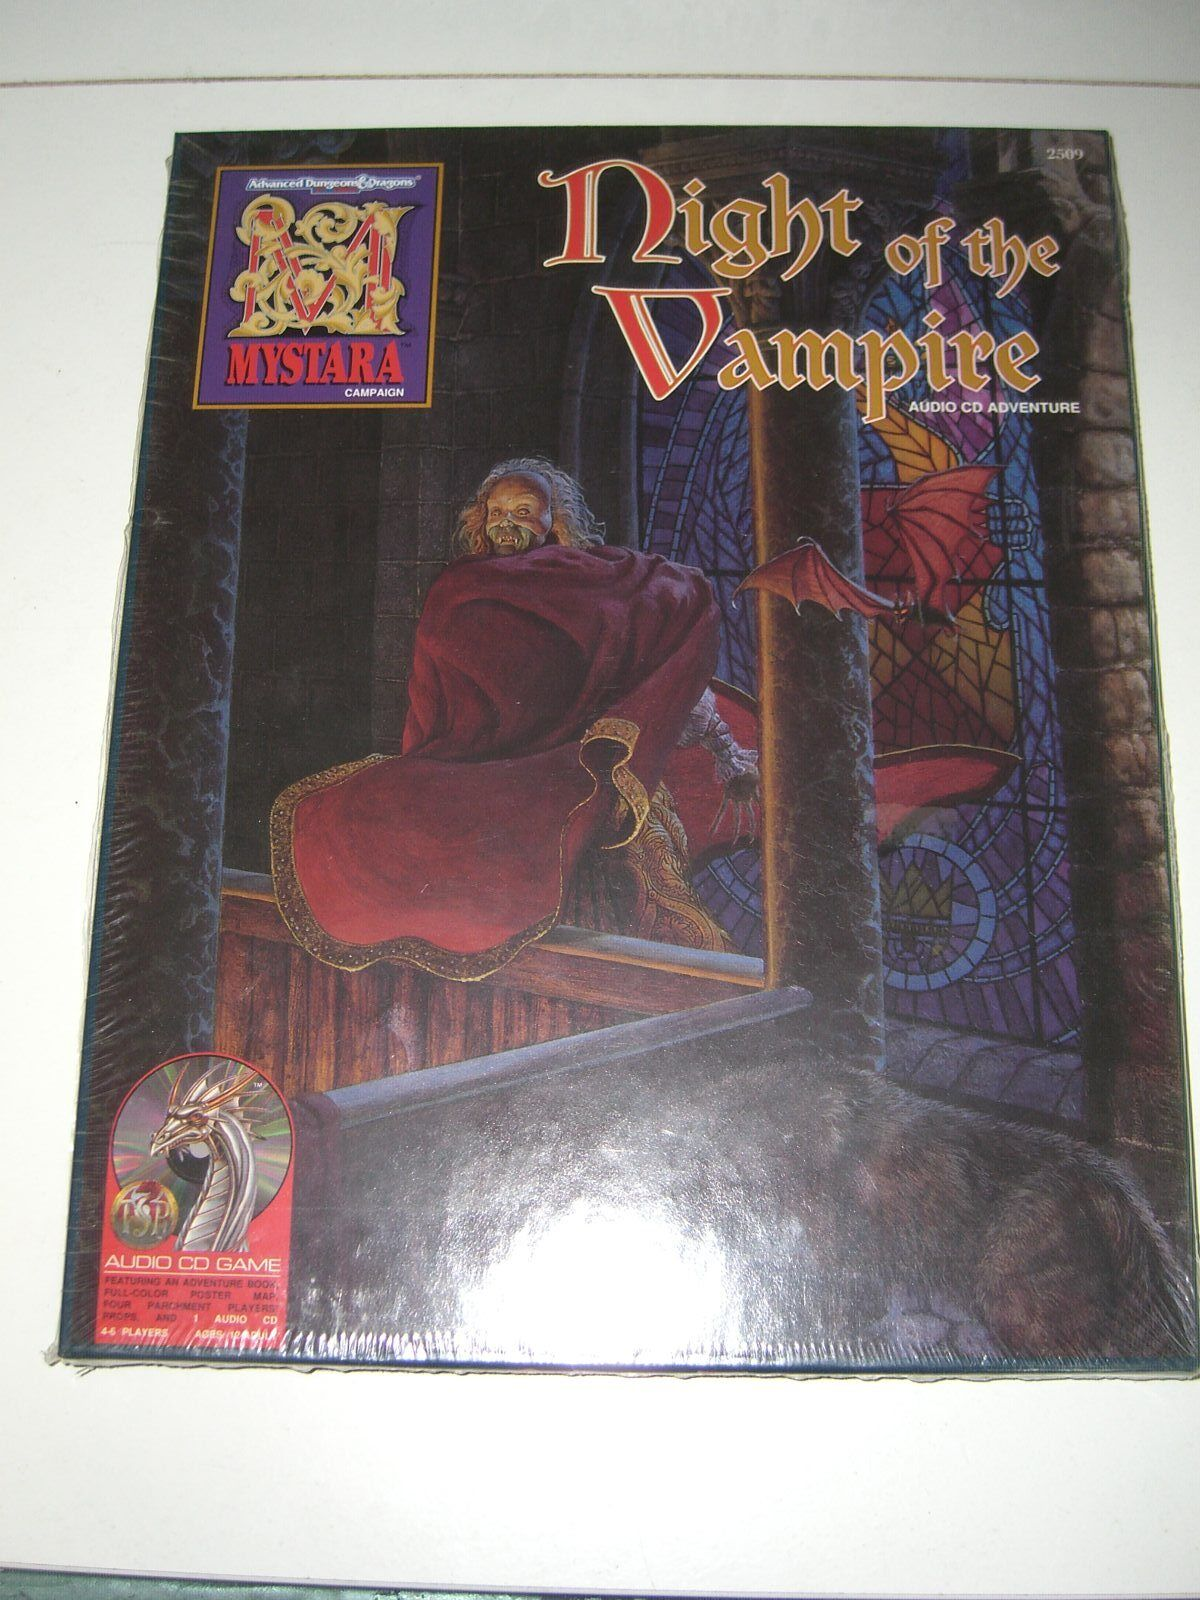 servicio de primera clase MYEstrellaA NIGHT OF THE VAMPIRE AUDIO ADVENTURE Box SET SET SET D&D AD&D TSR 2509 SEALED  calidad fantástica